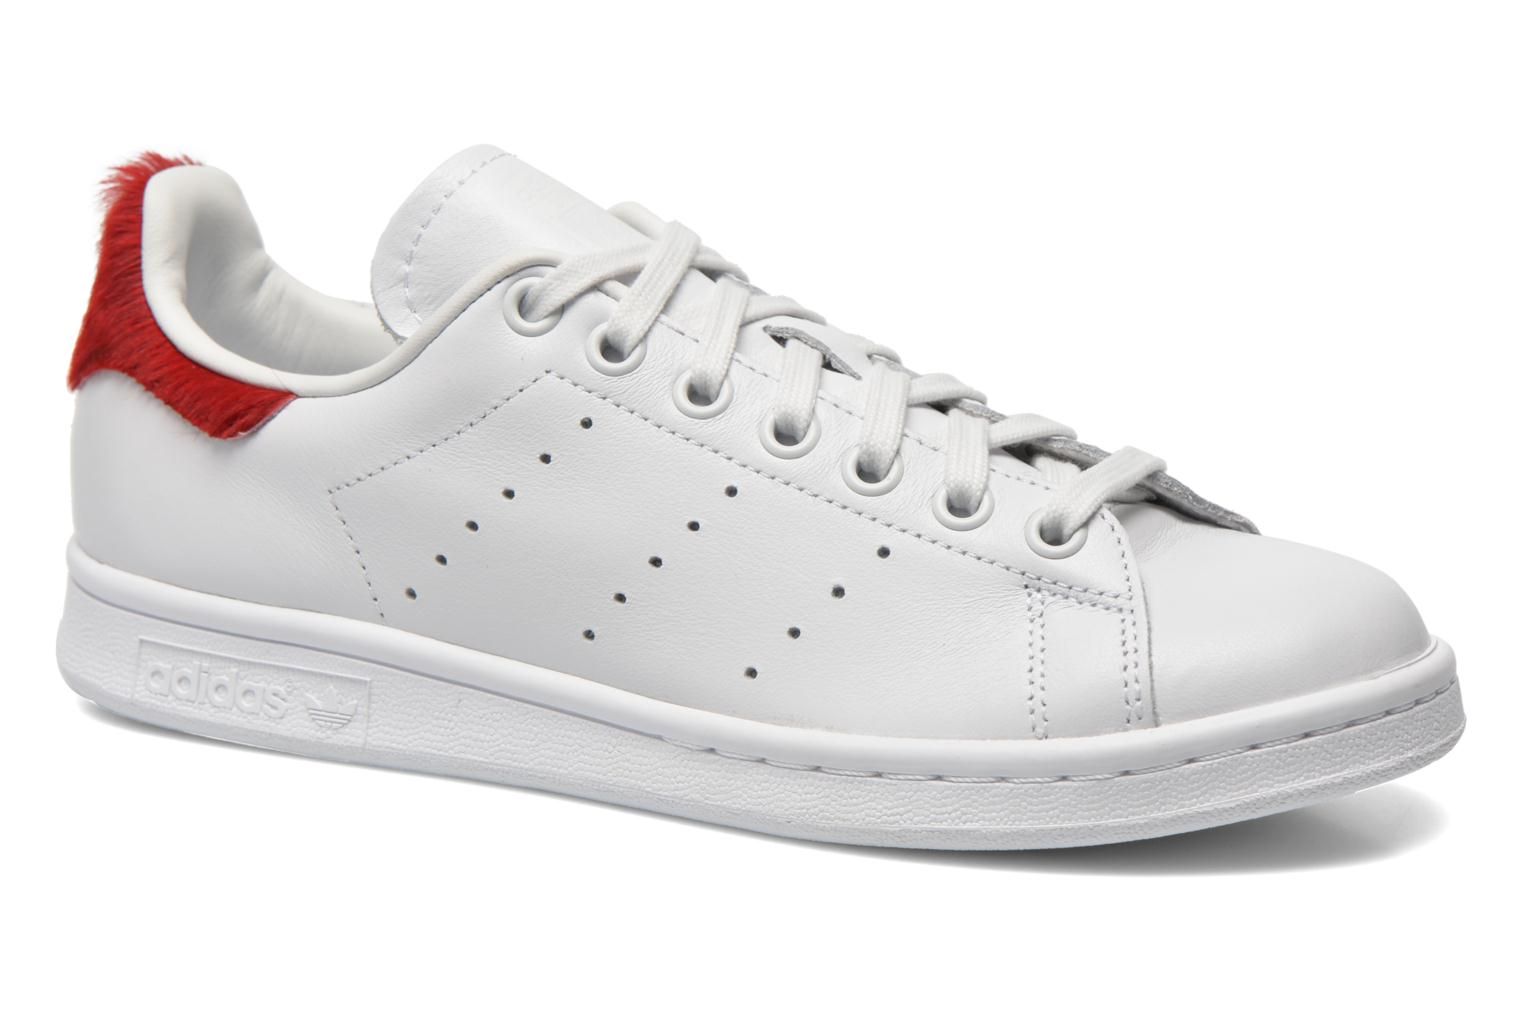 Stan Smith W Blavin/Blavin/Ftwbla